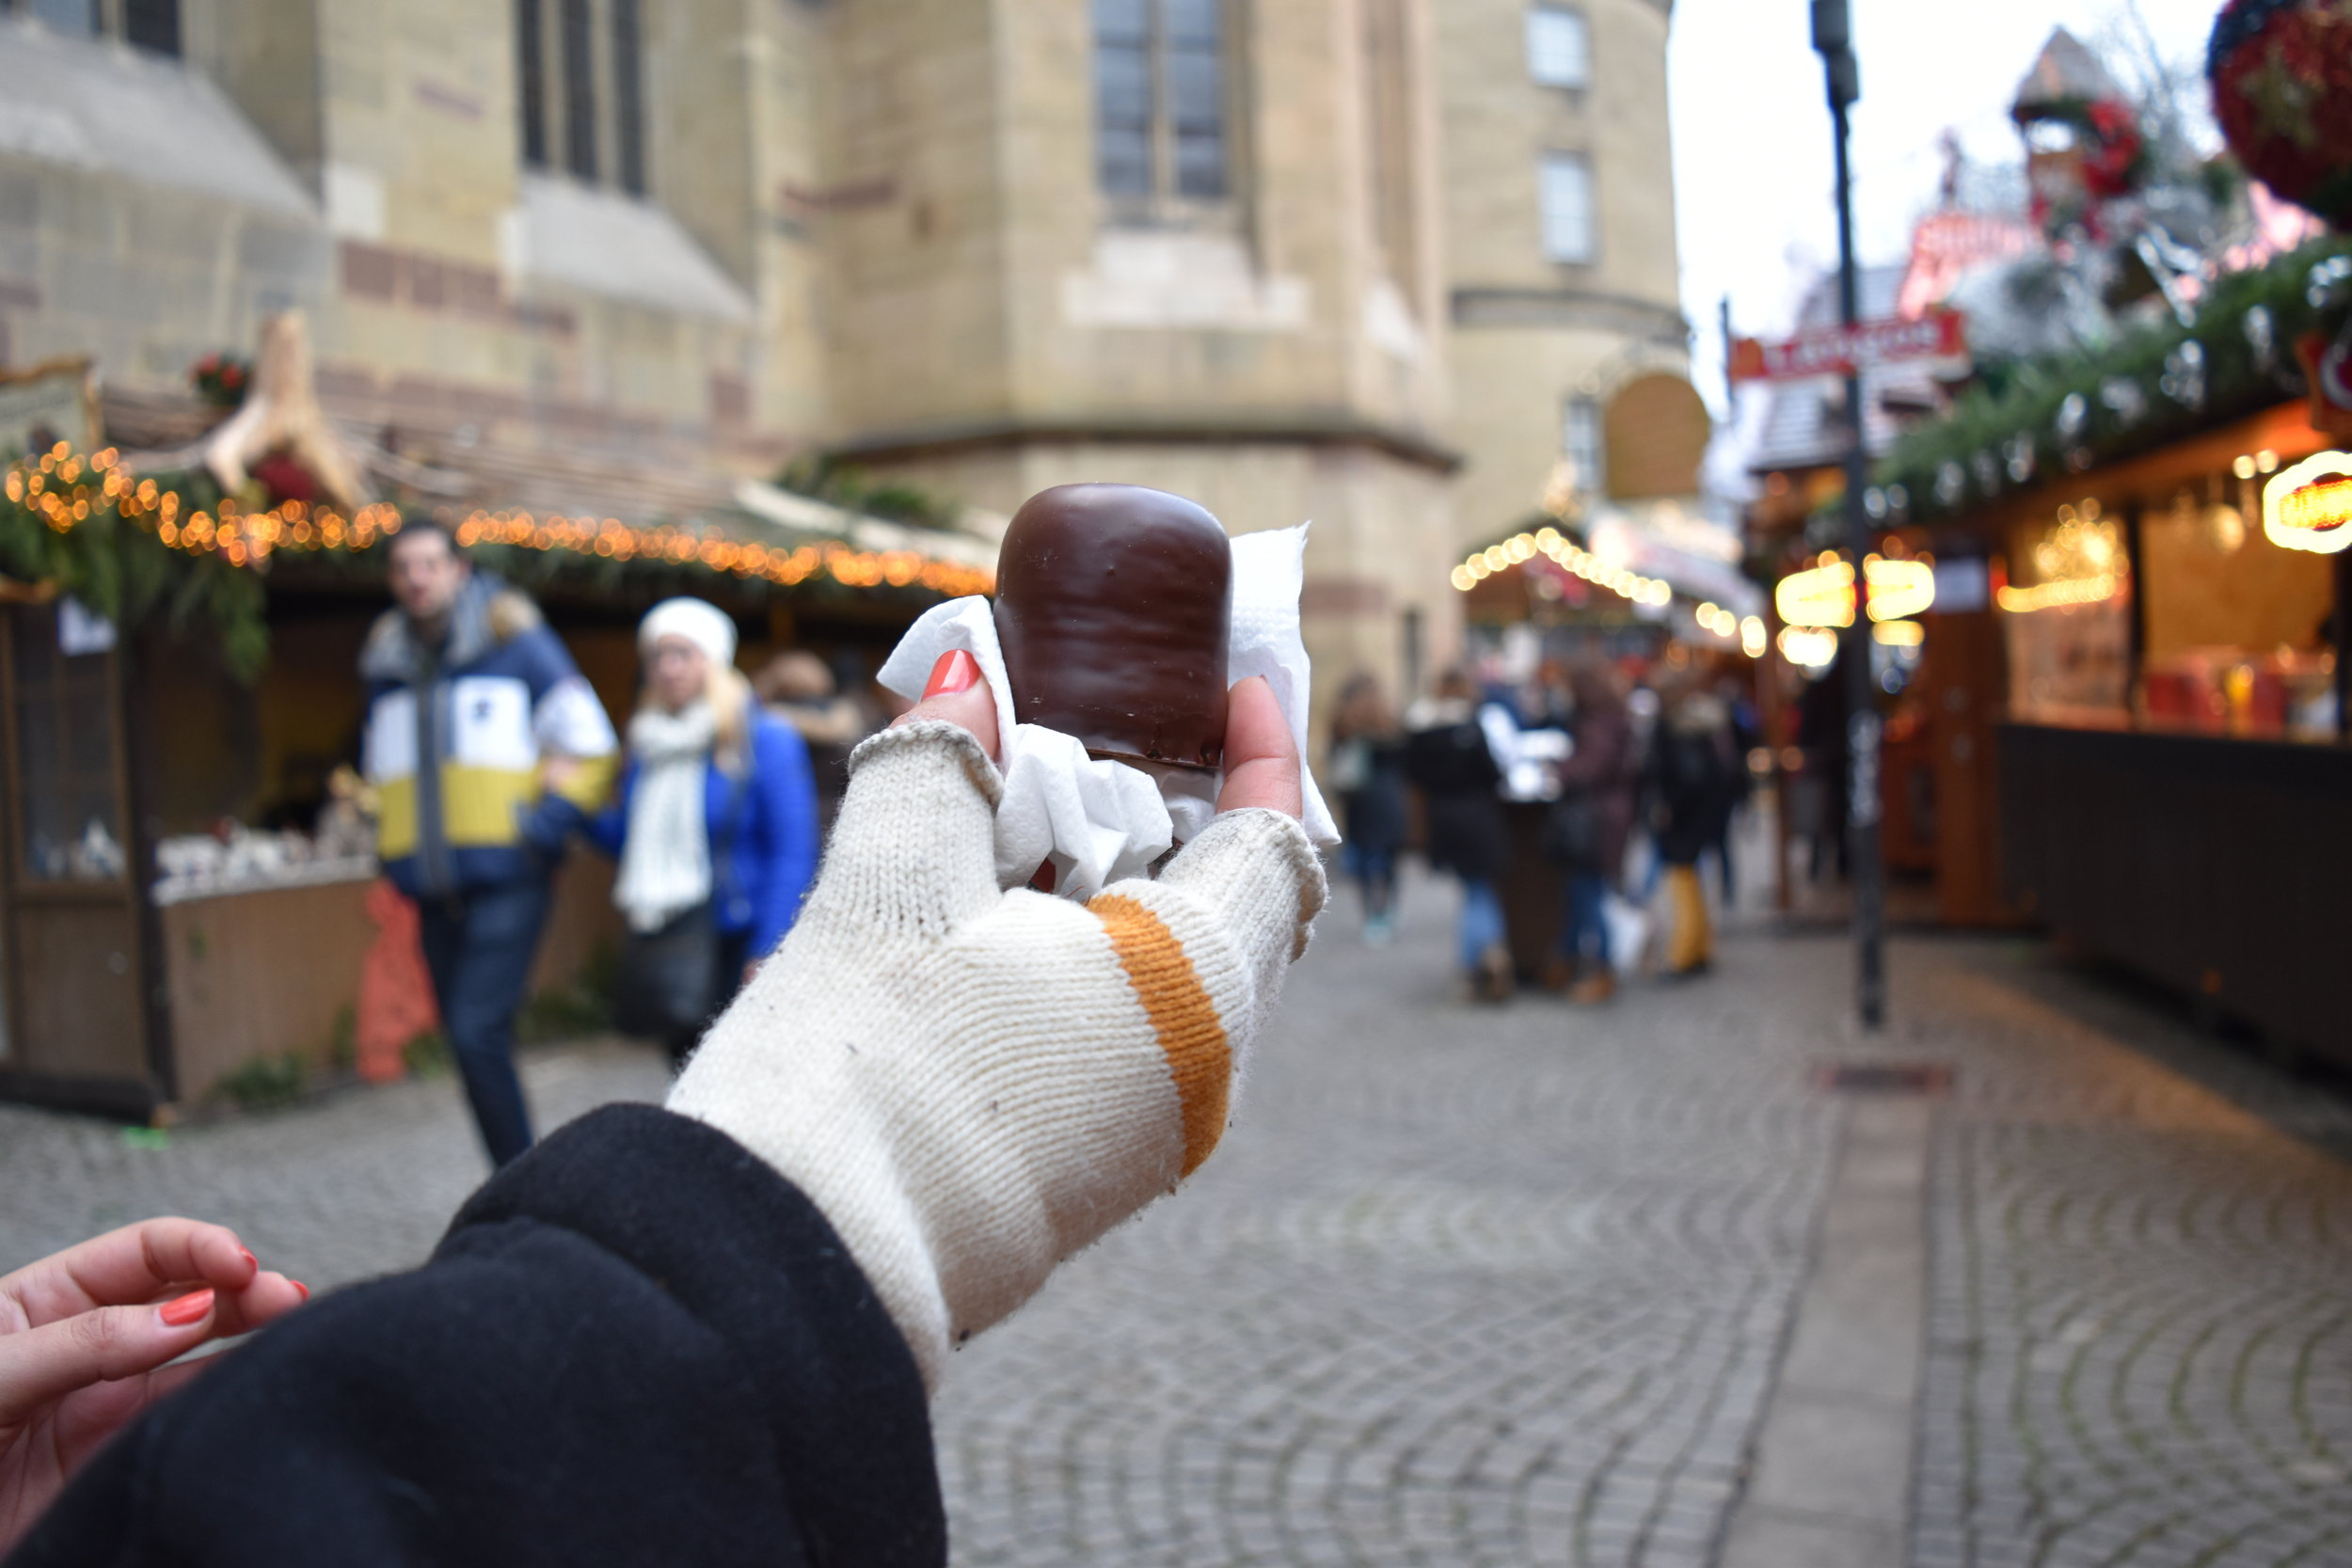 Patrons enjoy sweet treats such as Schokokuss (chocolate covered marshmallows) at the Christmas Market in Stuttgart, Germany.